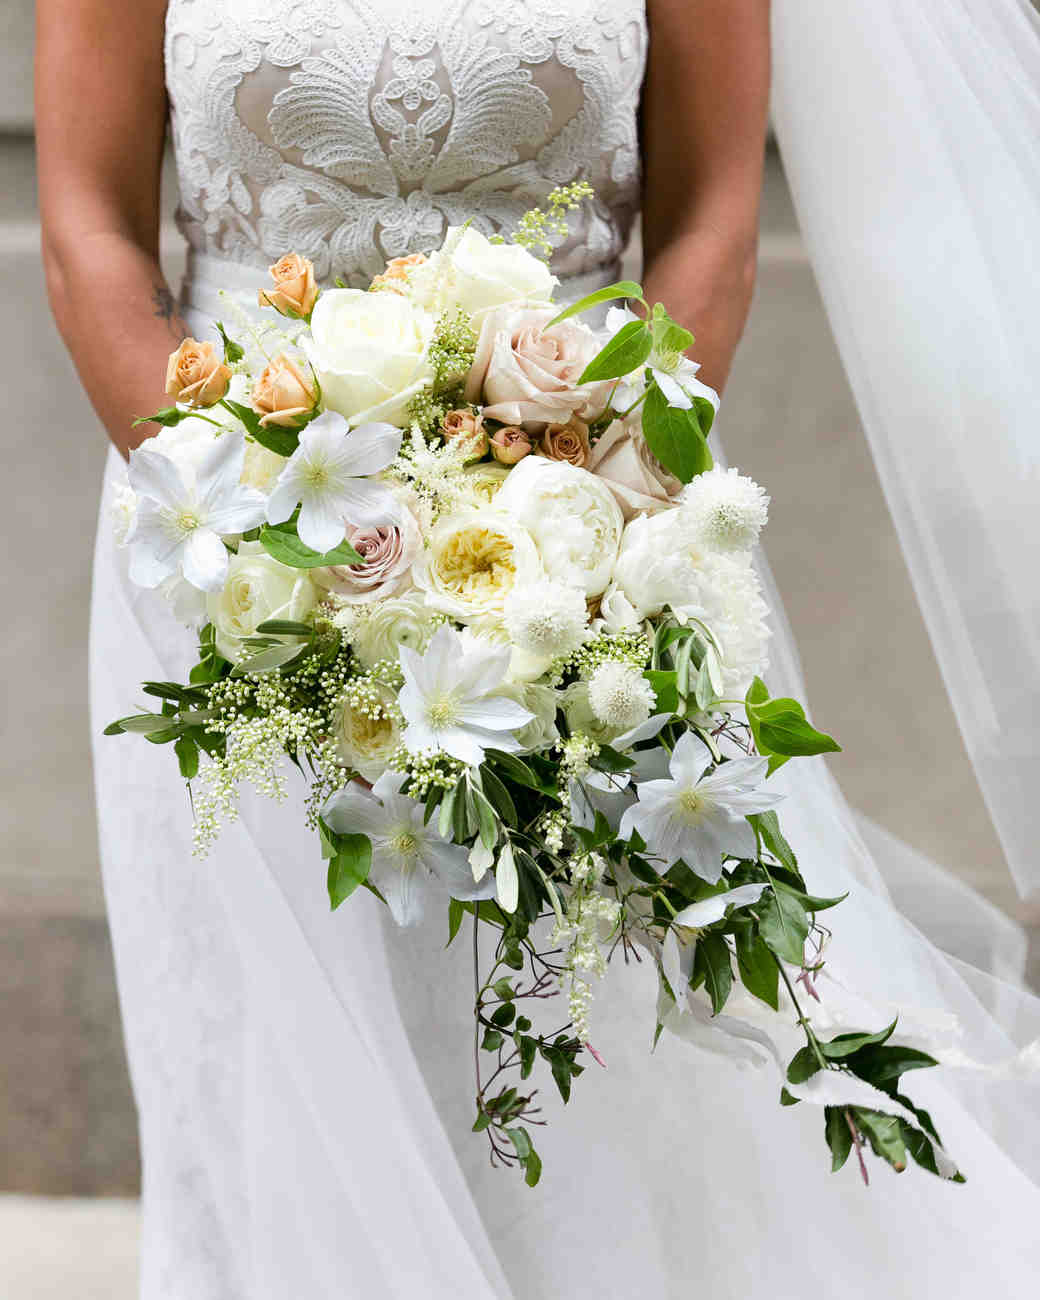 Wedding Flower Bouquets Ideas: 32 Chic Cascading Wedding Bouquets